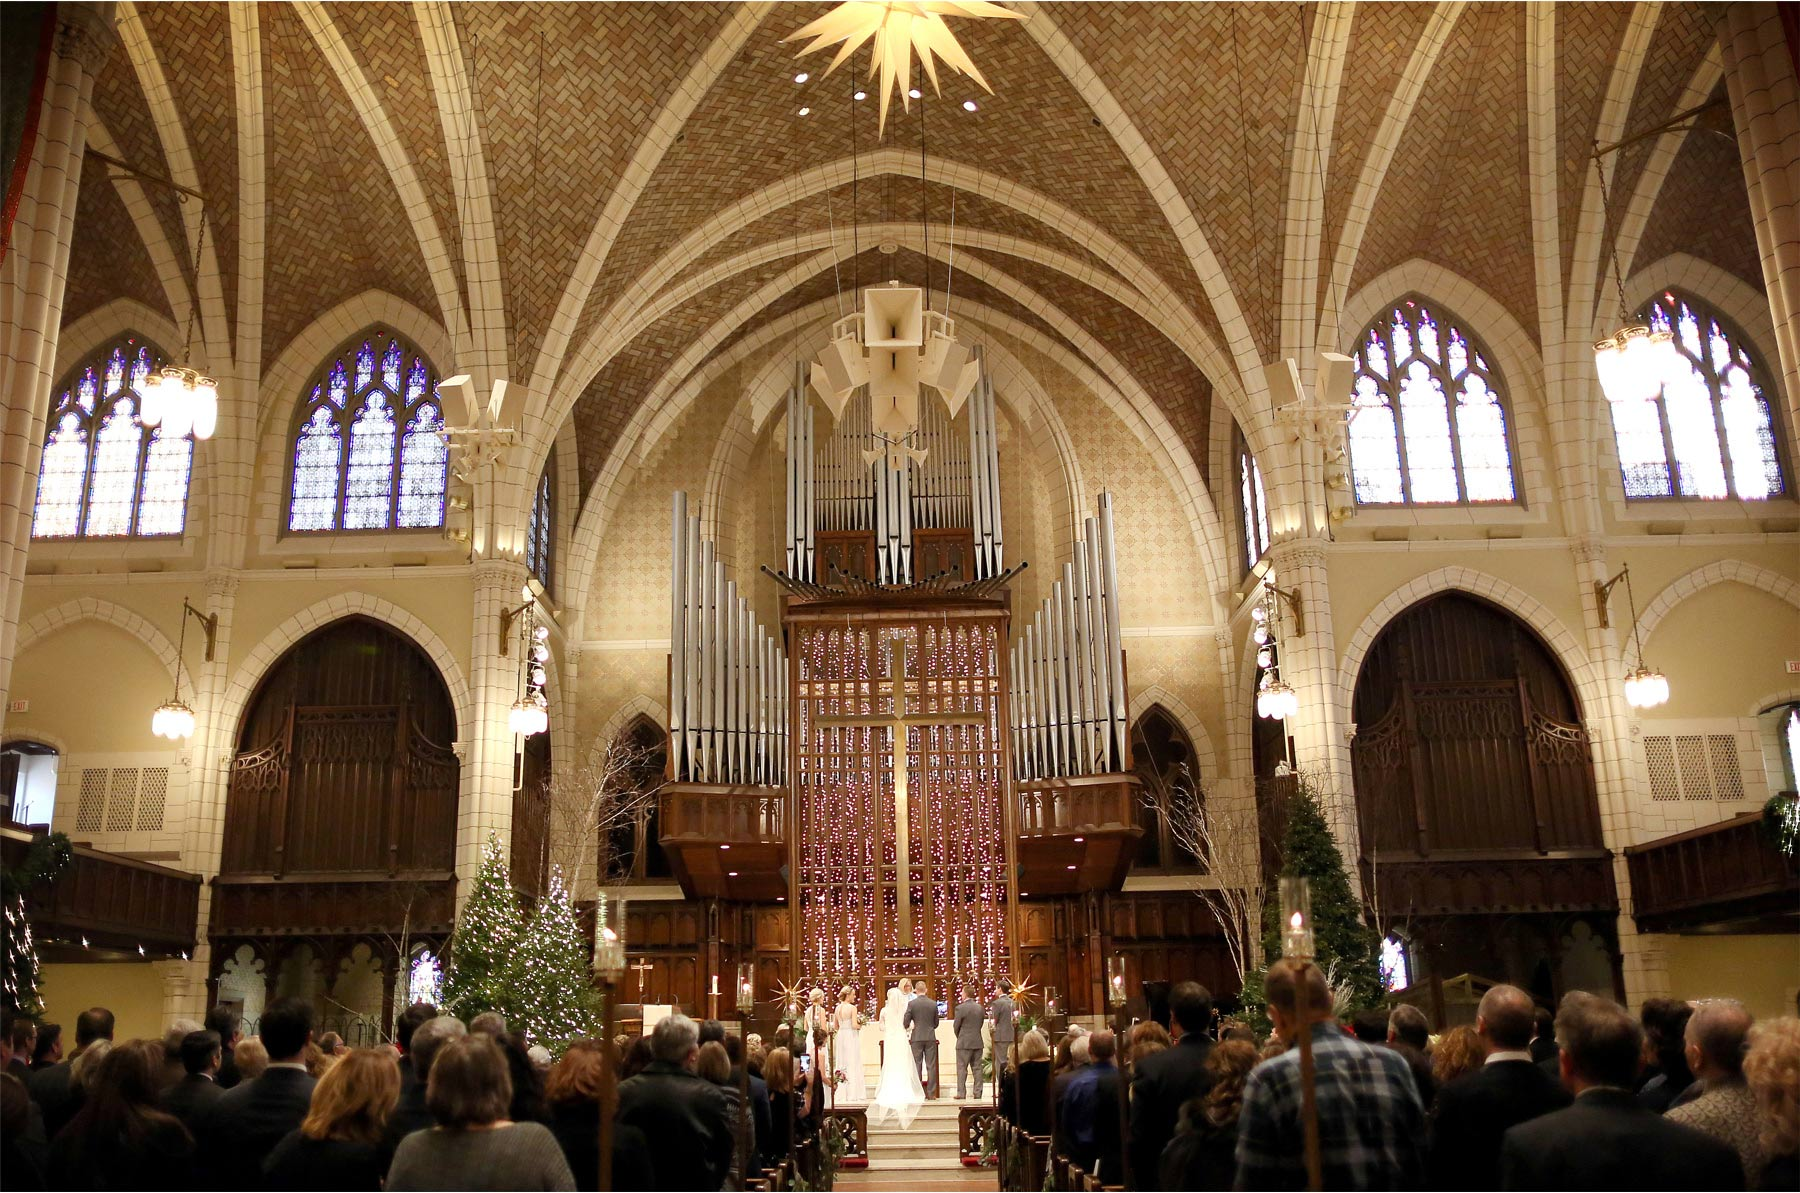 14-Minneapolis-Minnesota-Wedding-Photographer-by-Andrew-Vick-Photography-Winter-Central-Lutheran-Church-Ceremony-Bride-Groom-Vows-Brittany-and-Joseph.jpg